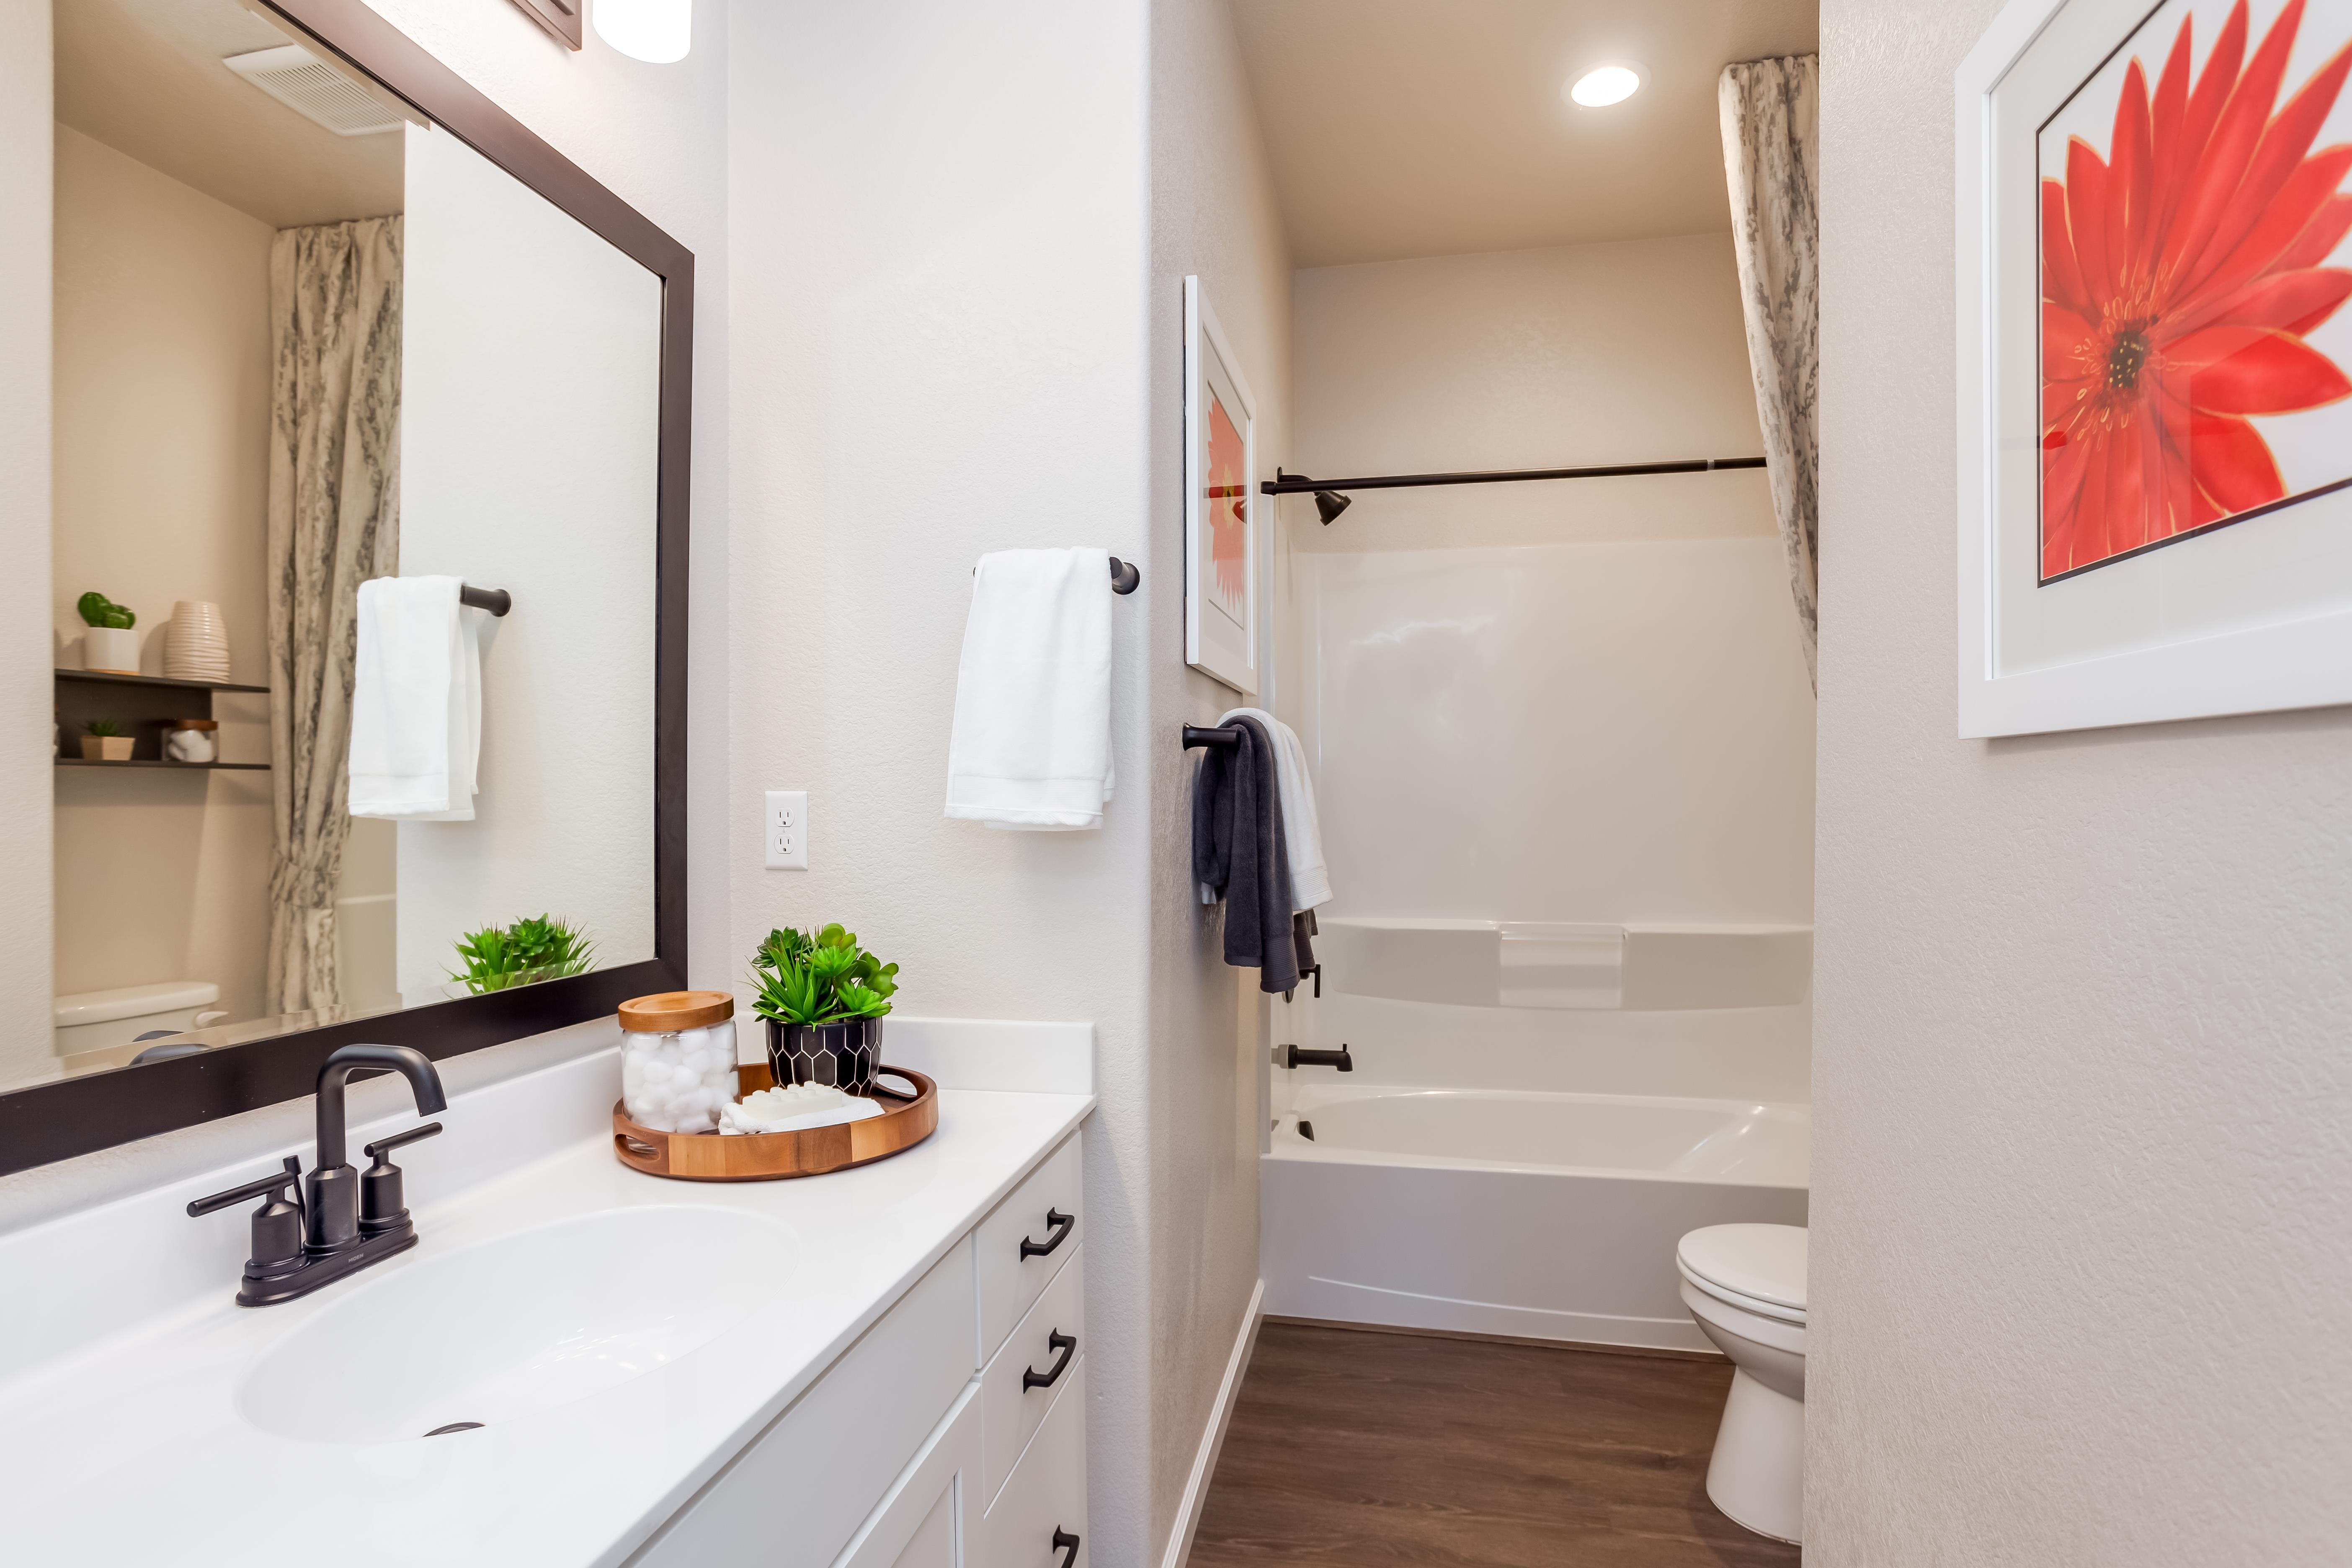 Bathroom featured in the Residence Two By Bright Homes in Merced, CA